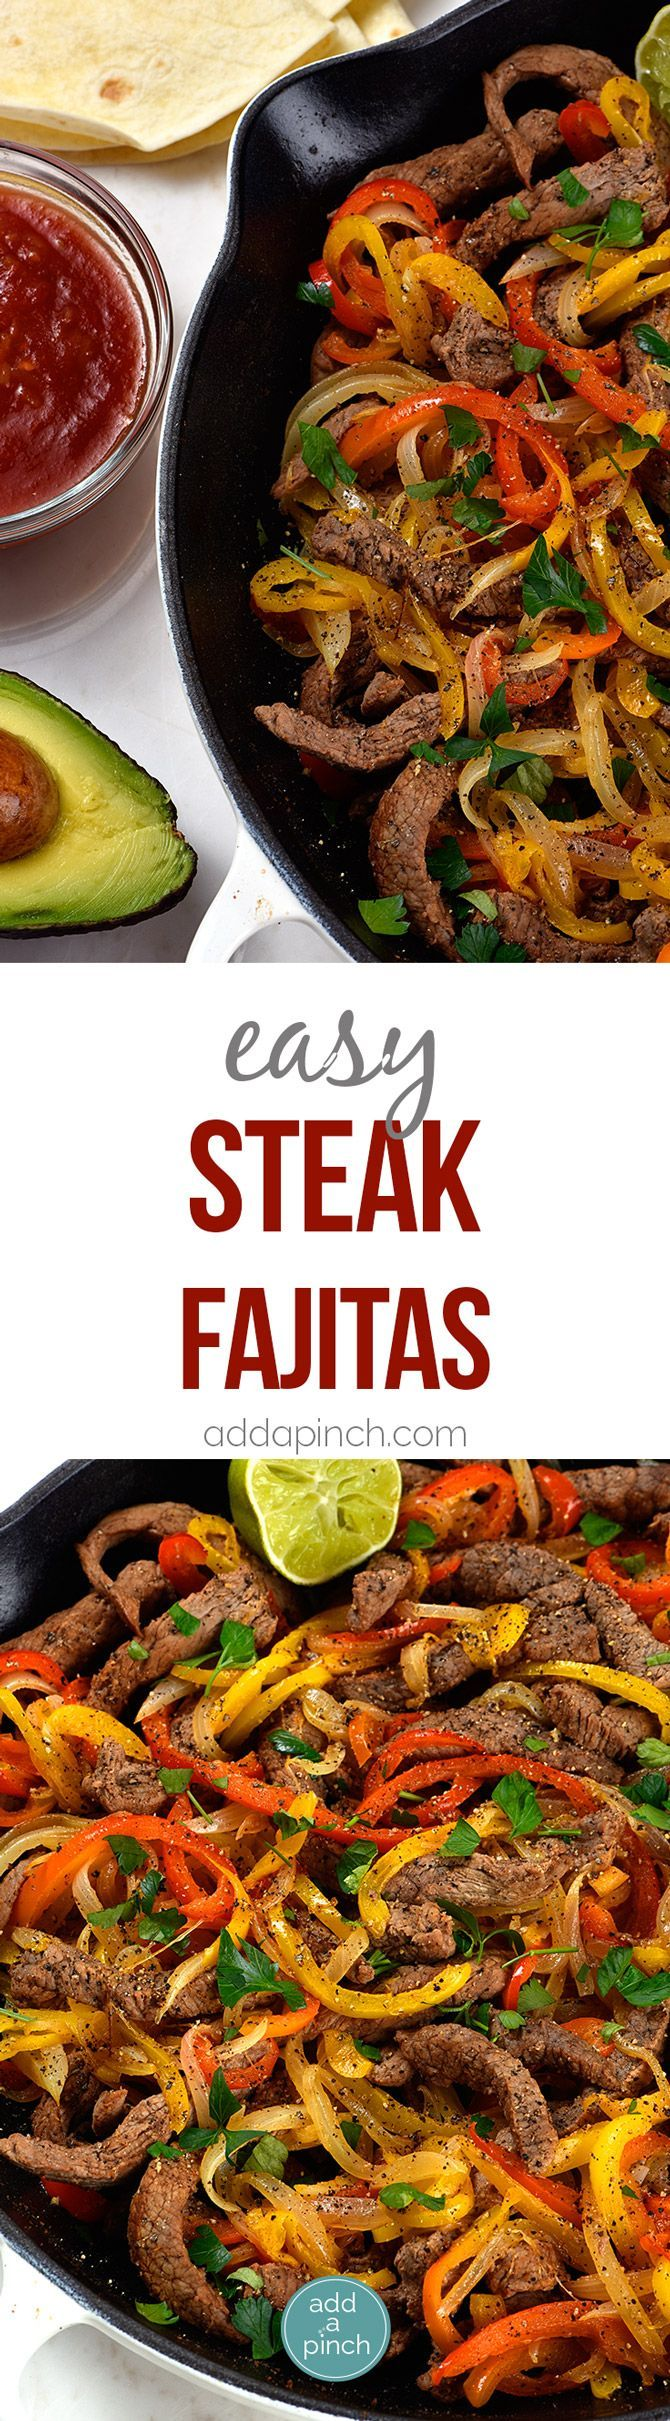 Steak Fajitas Recipe - Steak fajitas make a quick and easy meal perfect for weeknight suppers or weekend celebrations! Made with beef, peppers, onions and served with a stack of warm tortillas and condiments. They are always a favorite!